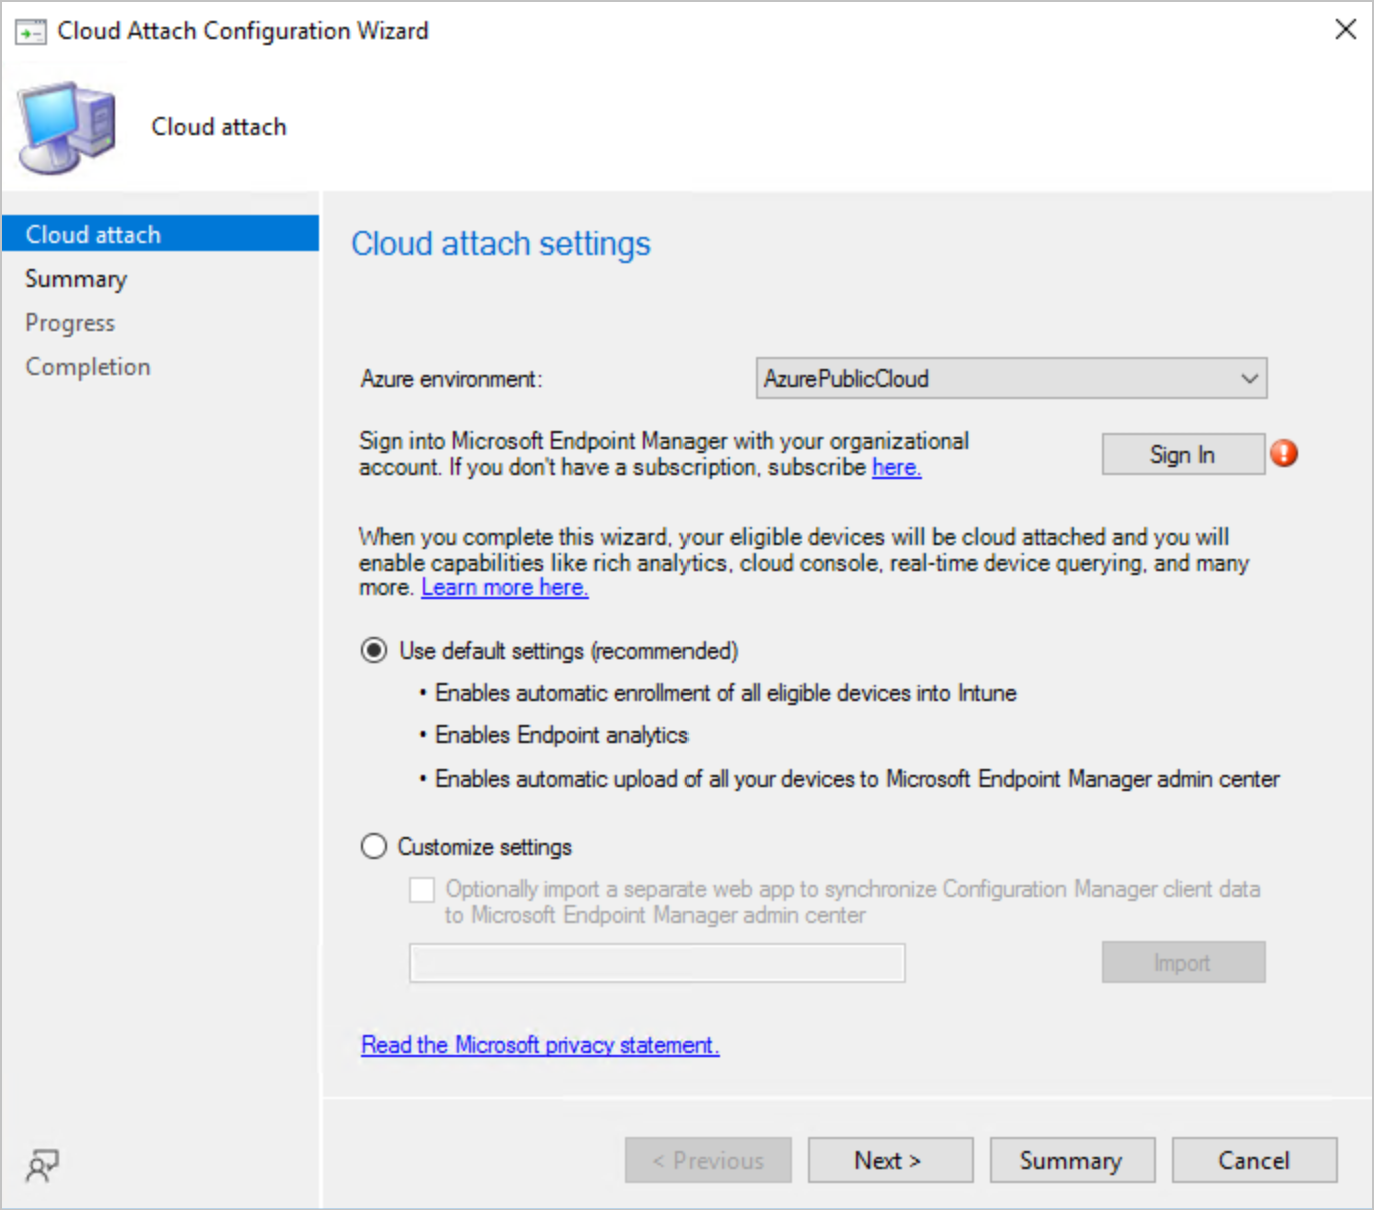 Cloud Attach Configuration - Configuration Manager Technical Preview 2110 New Features